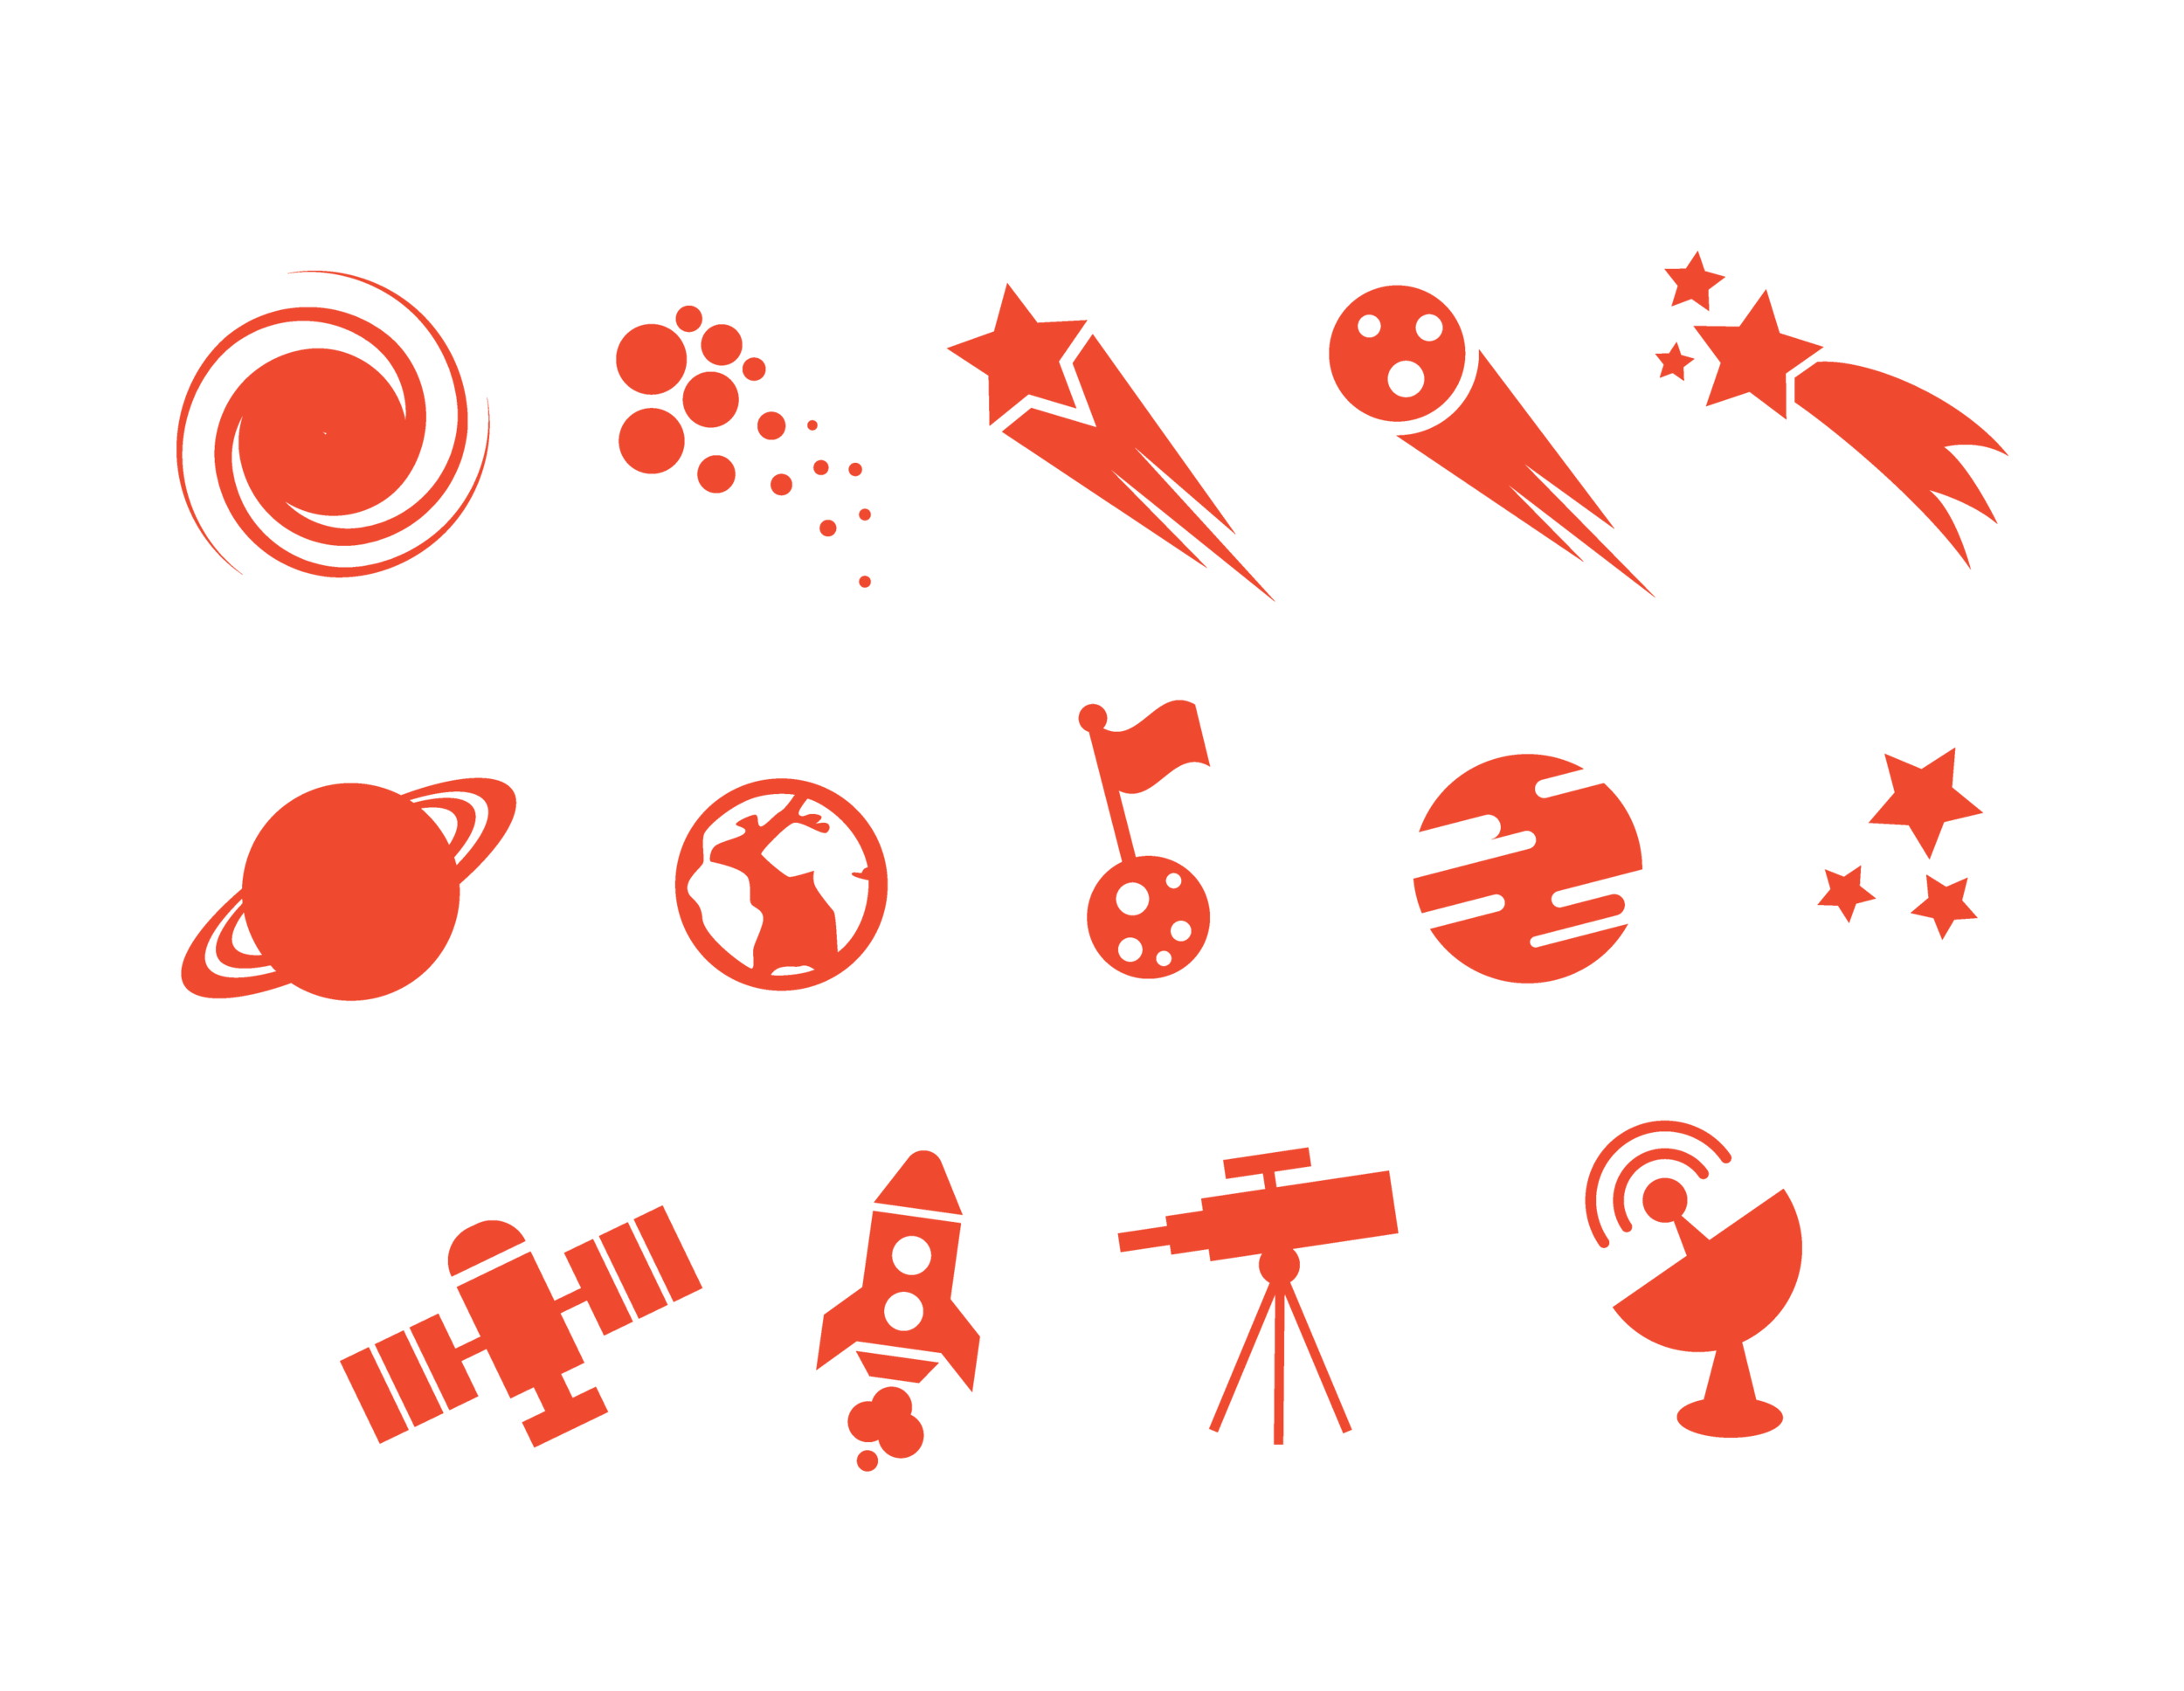 SEUSS_SPACE_ICONS.png